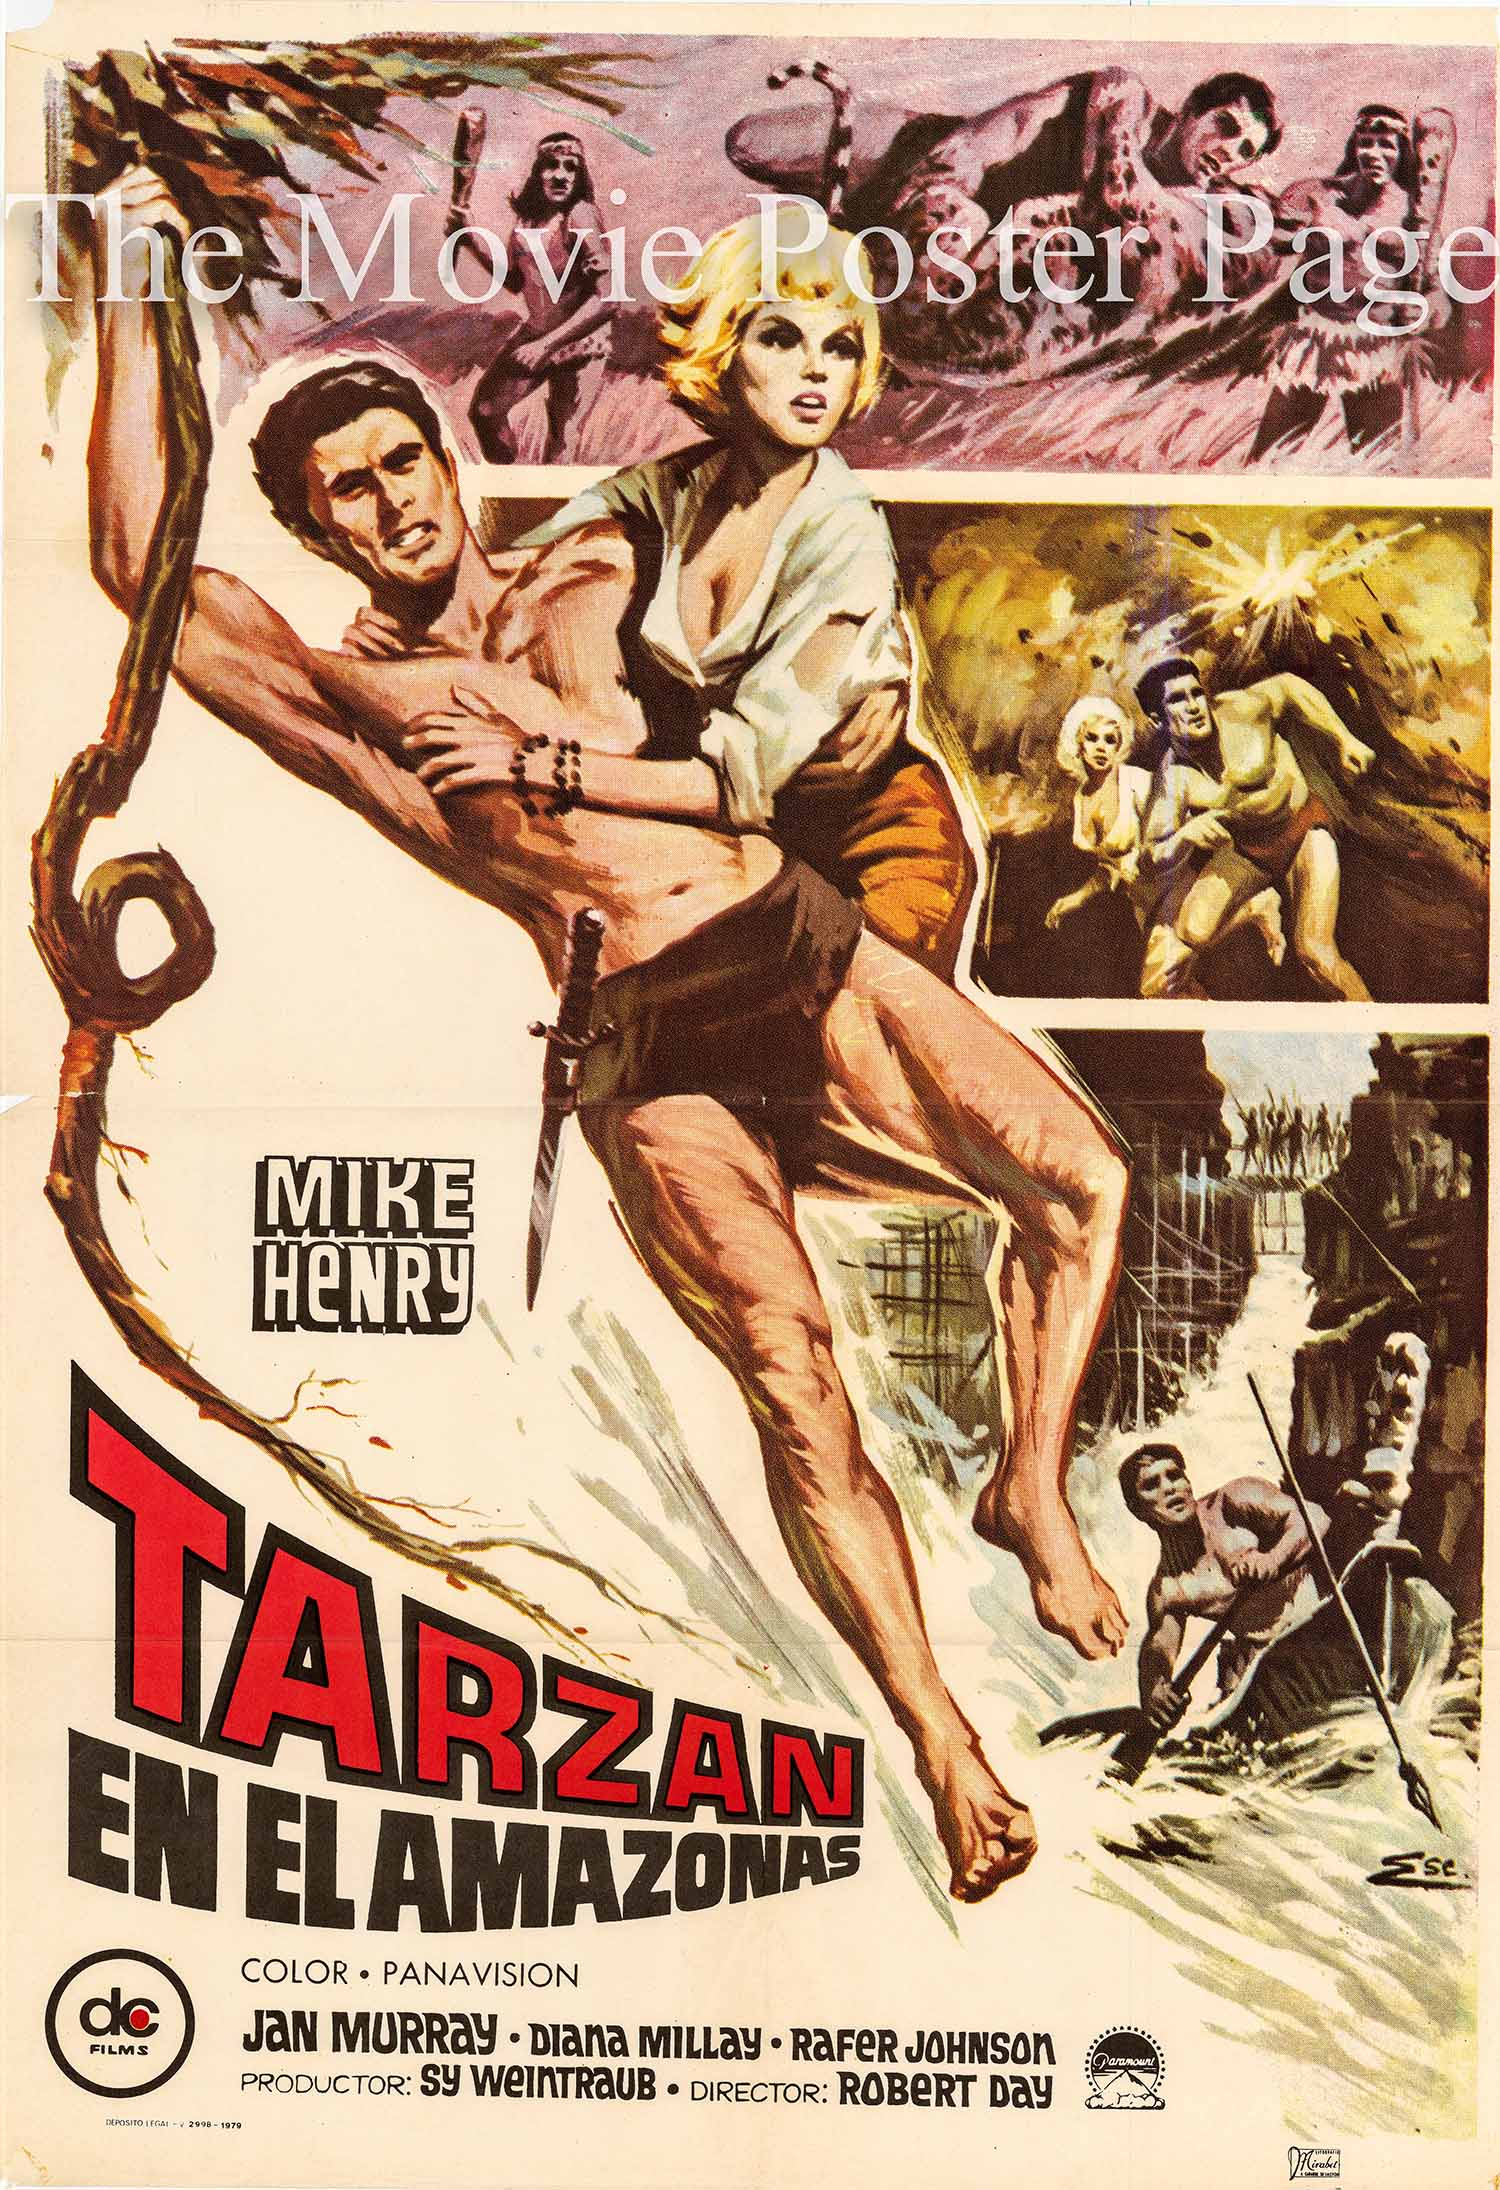 Pictured is a Spanish promotional poster for the 1967 Roberd Day film Tarzan and the Great River starring Mike Henry.